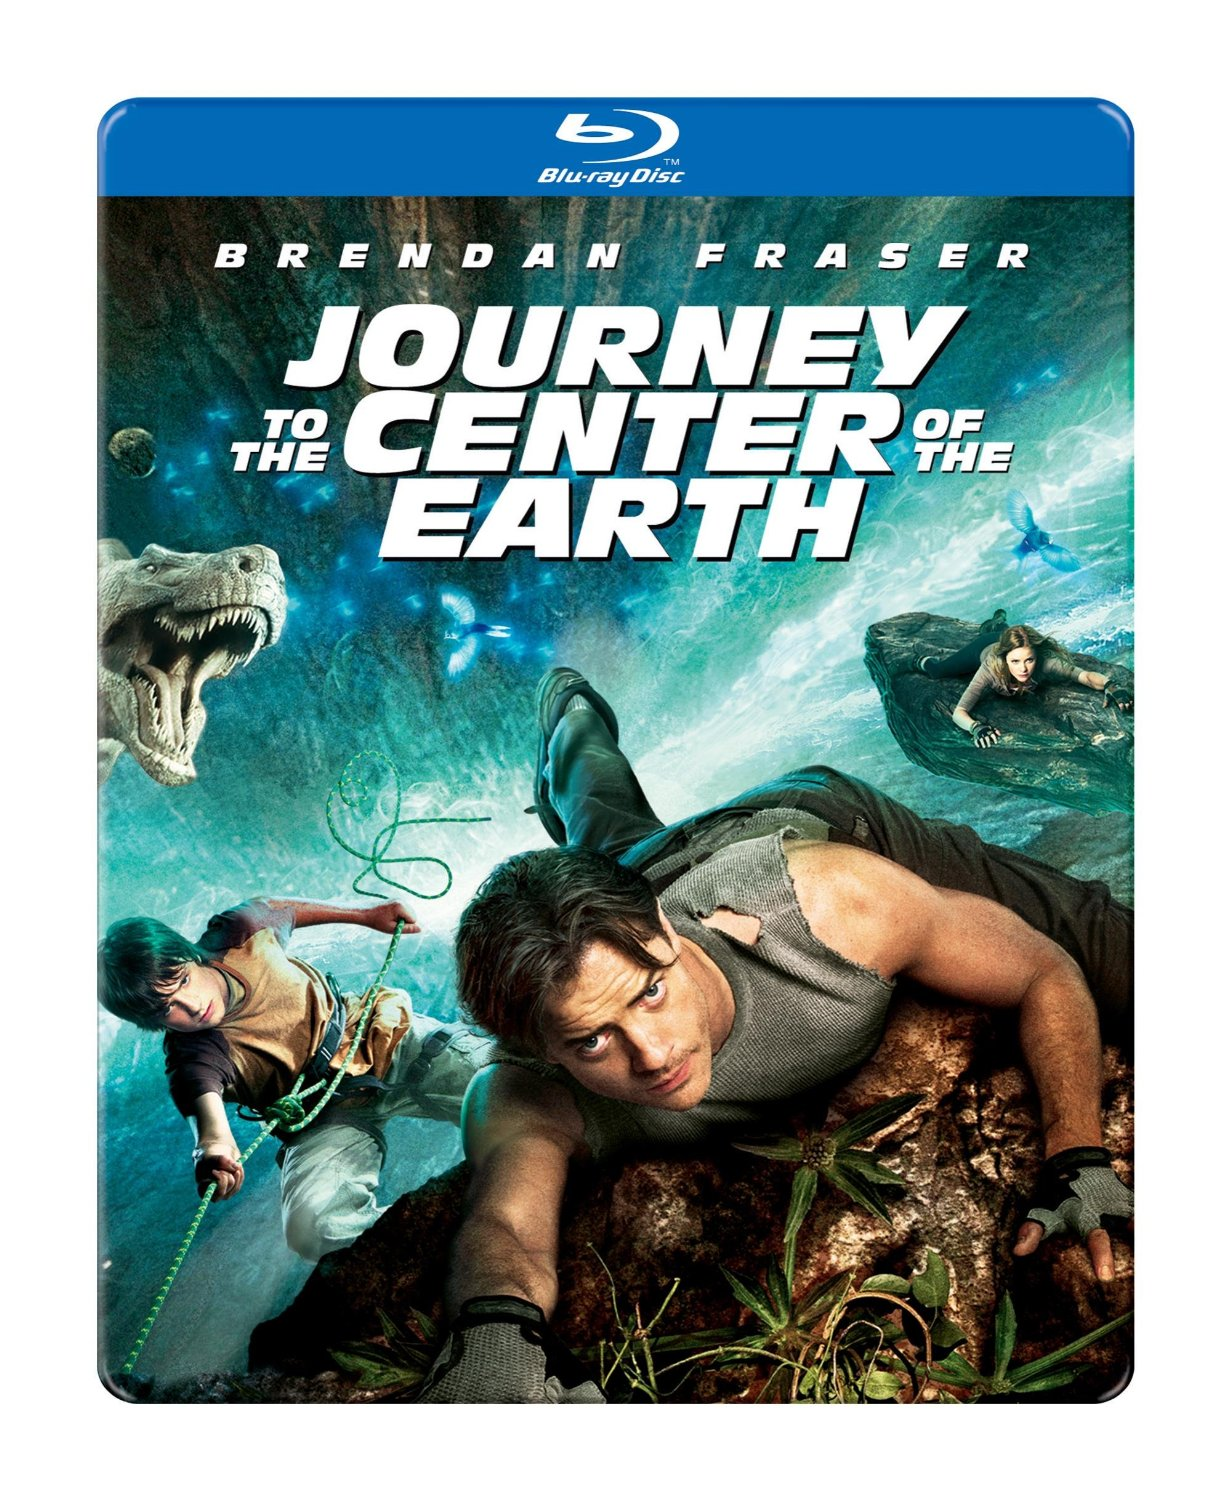 Journey To The Center Of The Earth Steelbook Packaging Blu Ray Only 9 99 Reg 24 98